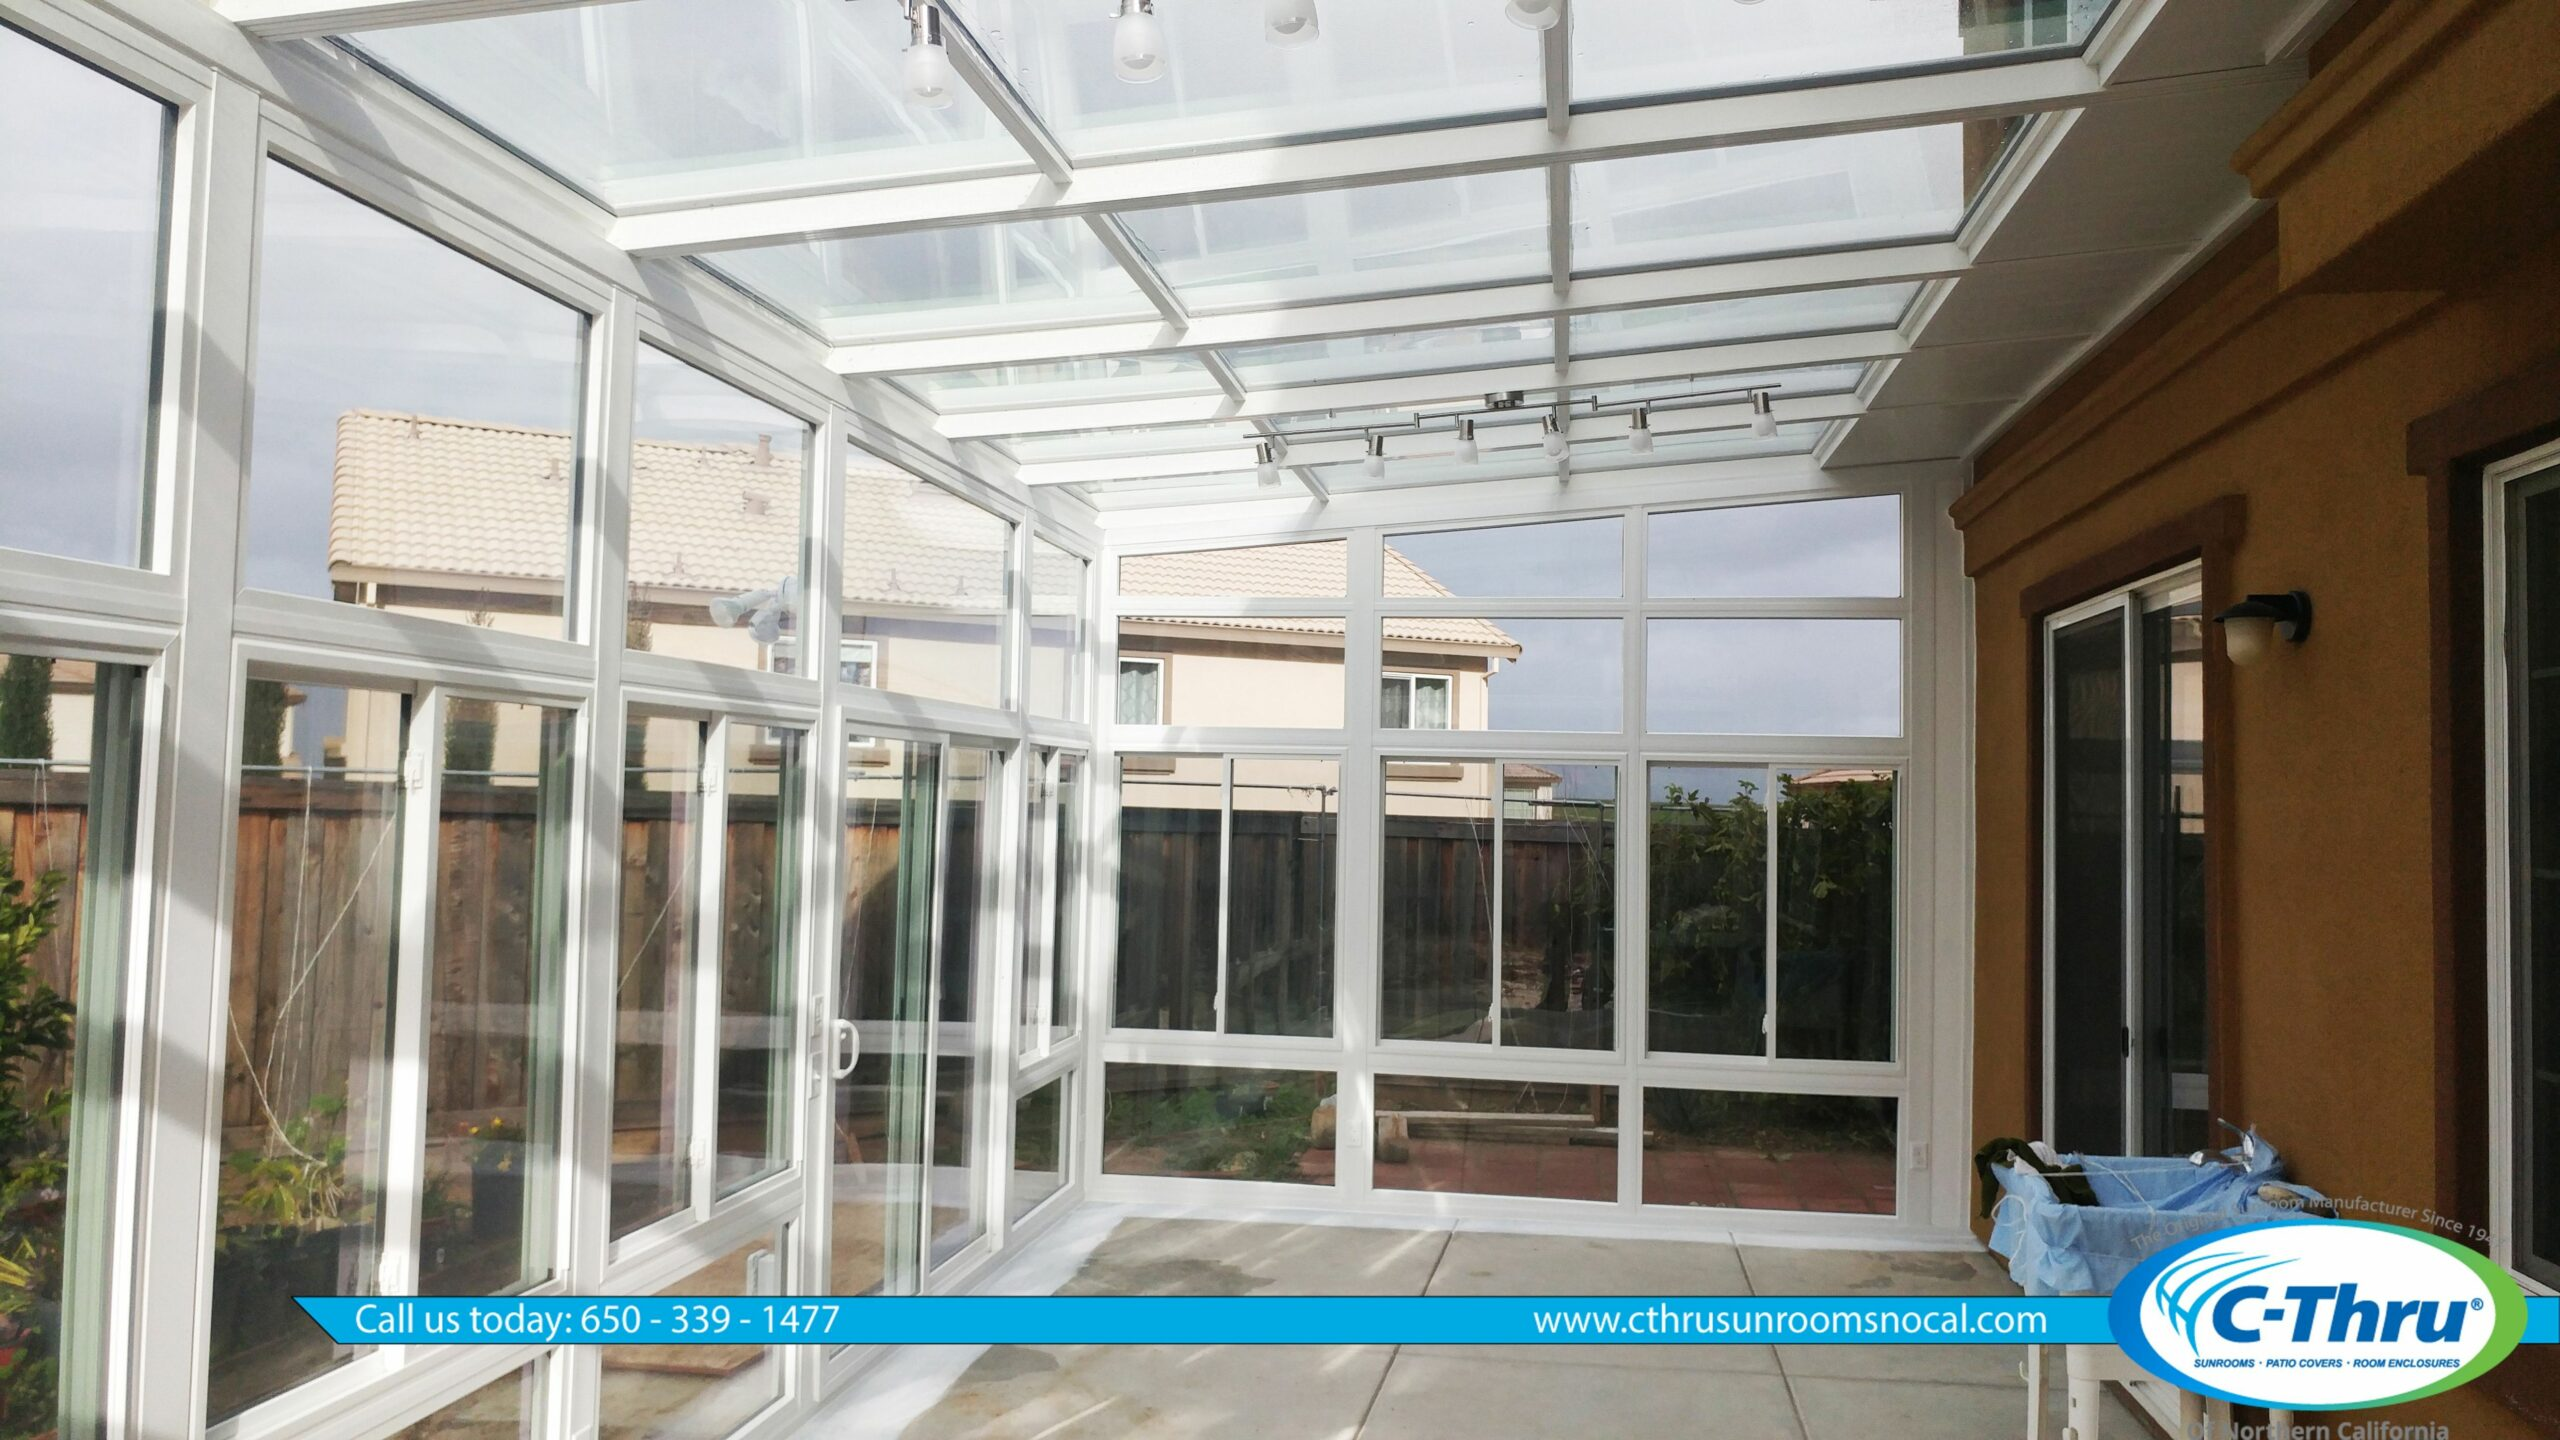 Sunrooms, Patio Covers, and Screen systems, SF Bay Area, Free ..